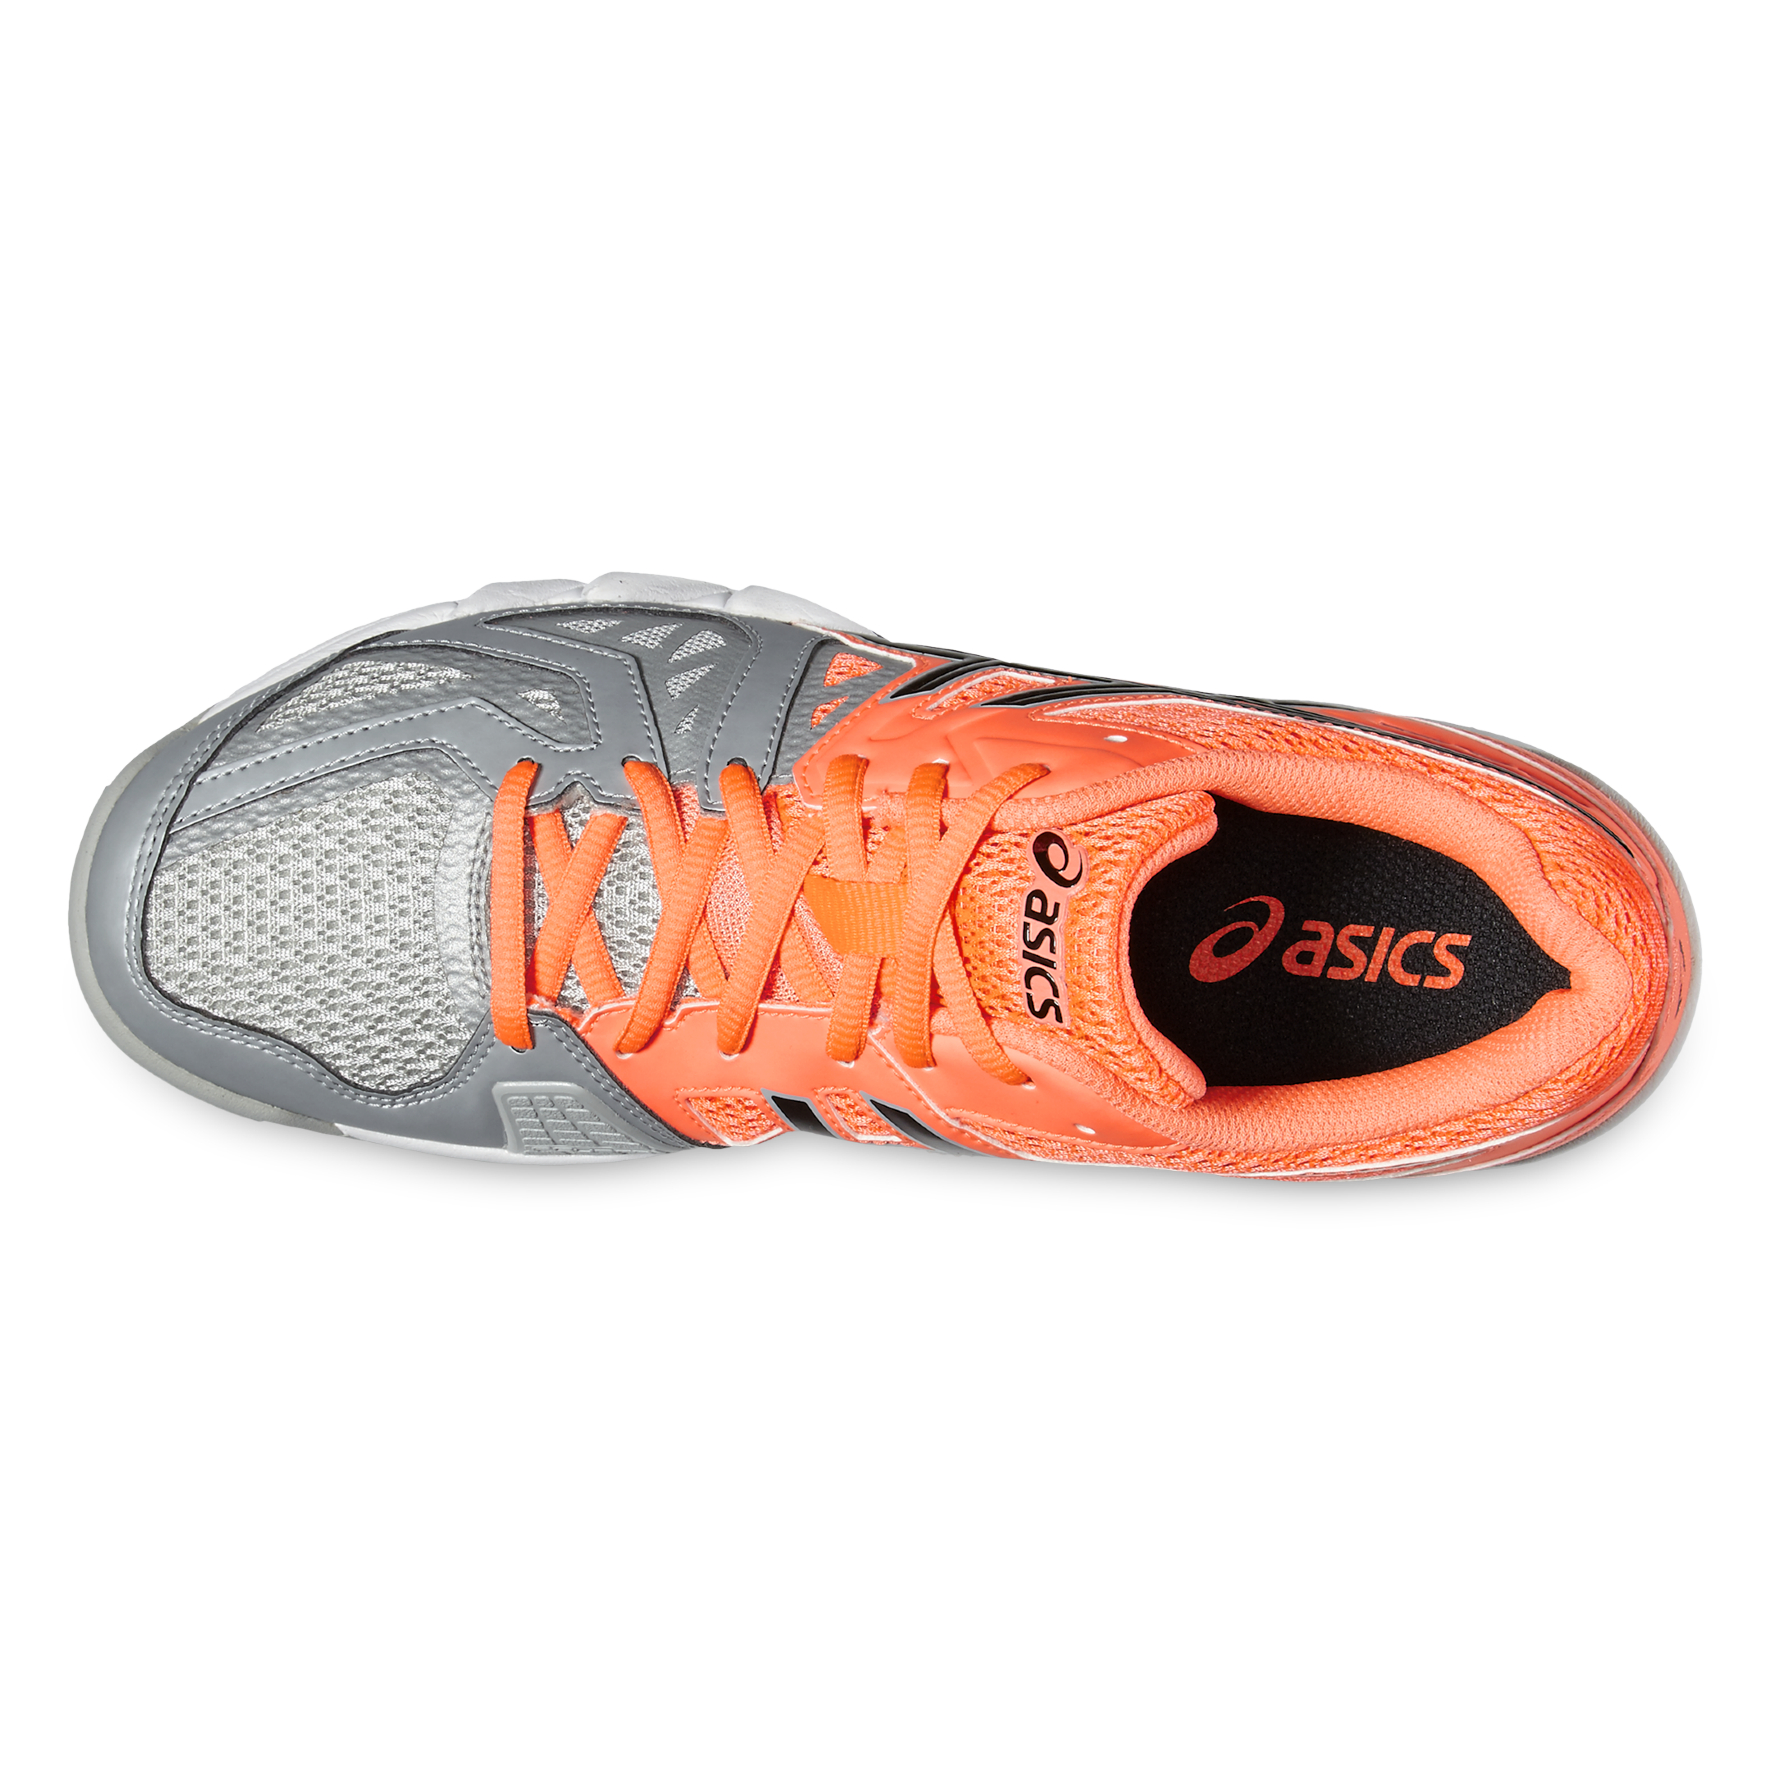 ASICS GEL-Blade Lady Upper